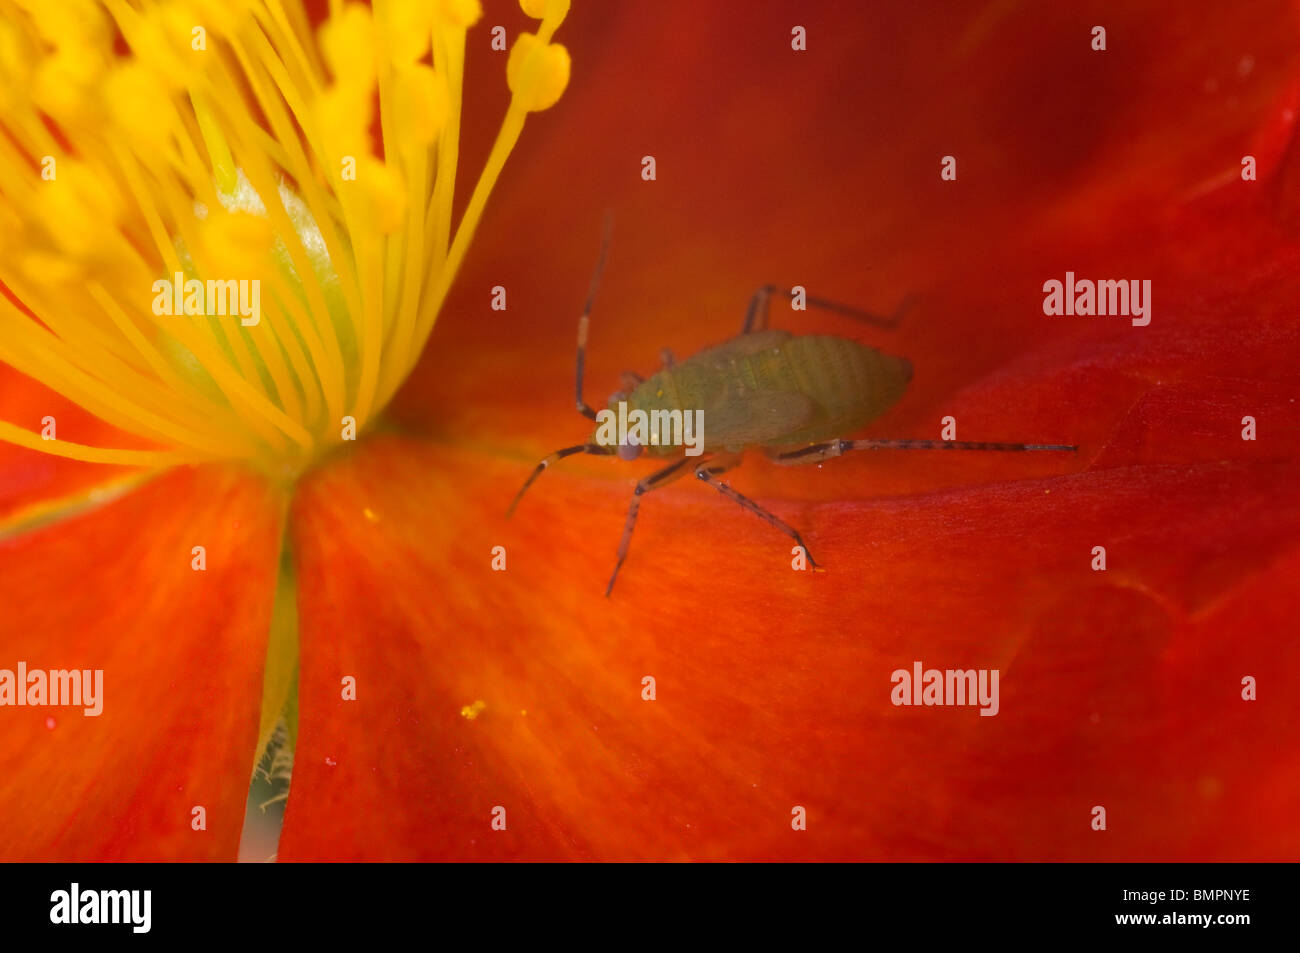 extreme close up of a greenfly or aphid (wingless form) on a helianthemum (rock rose) flower. - Stock Image